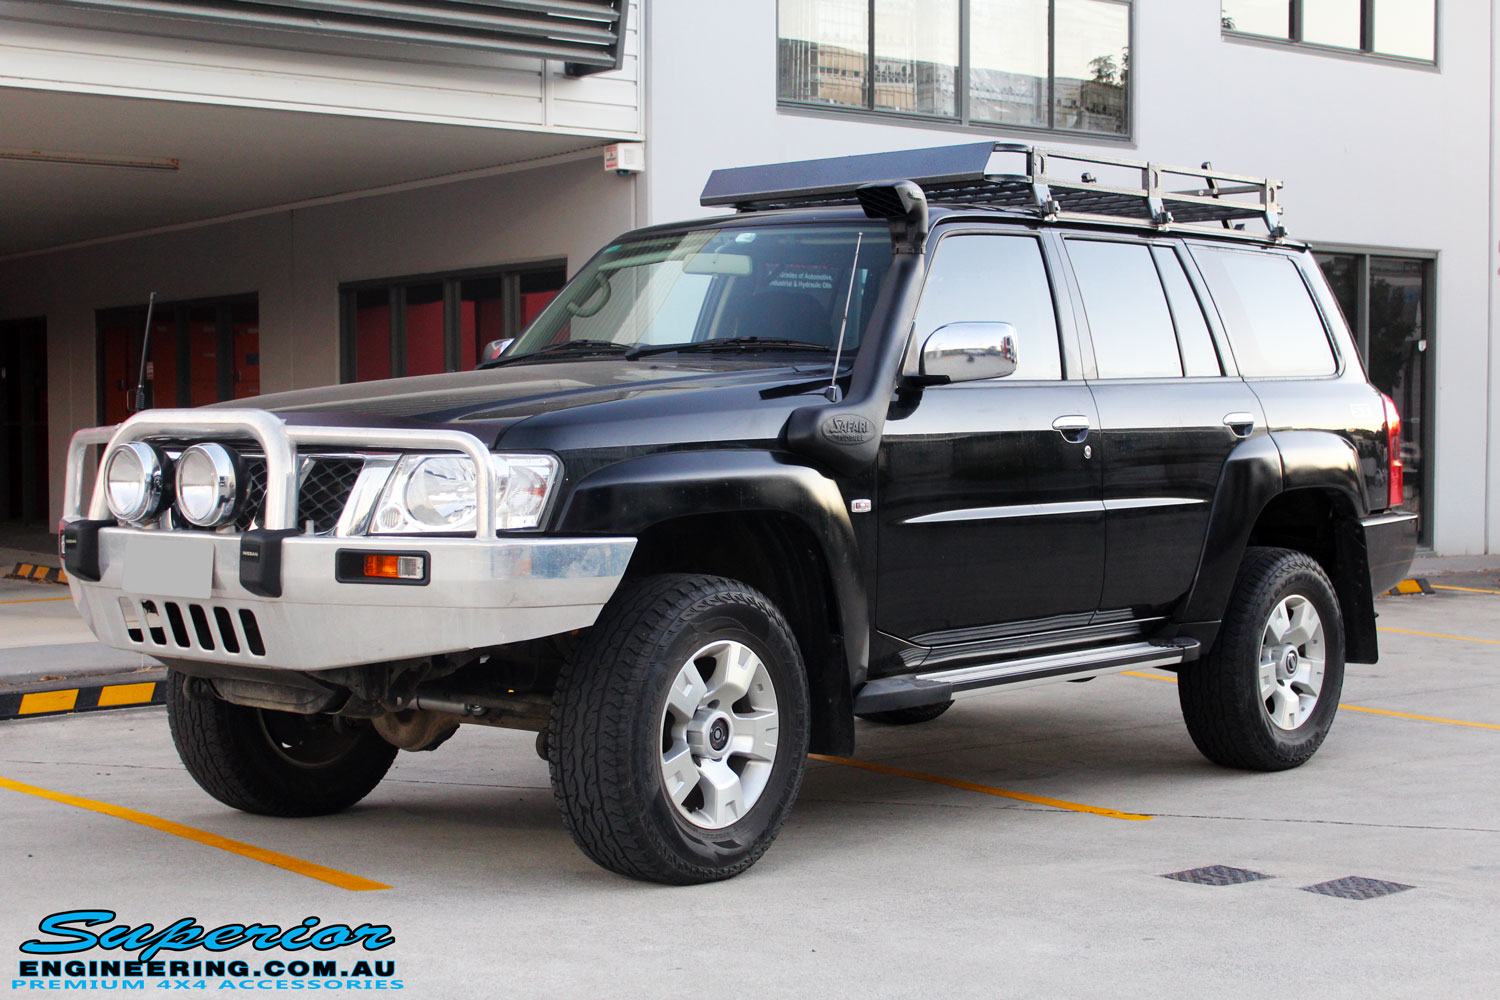 "Left front side view of a Black Nissan GU Patrol Wagon after being fitted with a Superior 2"" Inch Nitro Gas Lift Kit, Airbag Man 2"" Inch Coil Air Helper Kit, Safari Snorkel, Brown Davis Long Range Fuel Tank, Superior Coil Tower Brace Kit & Superior Upper Control Arms"